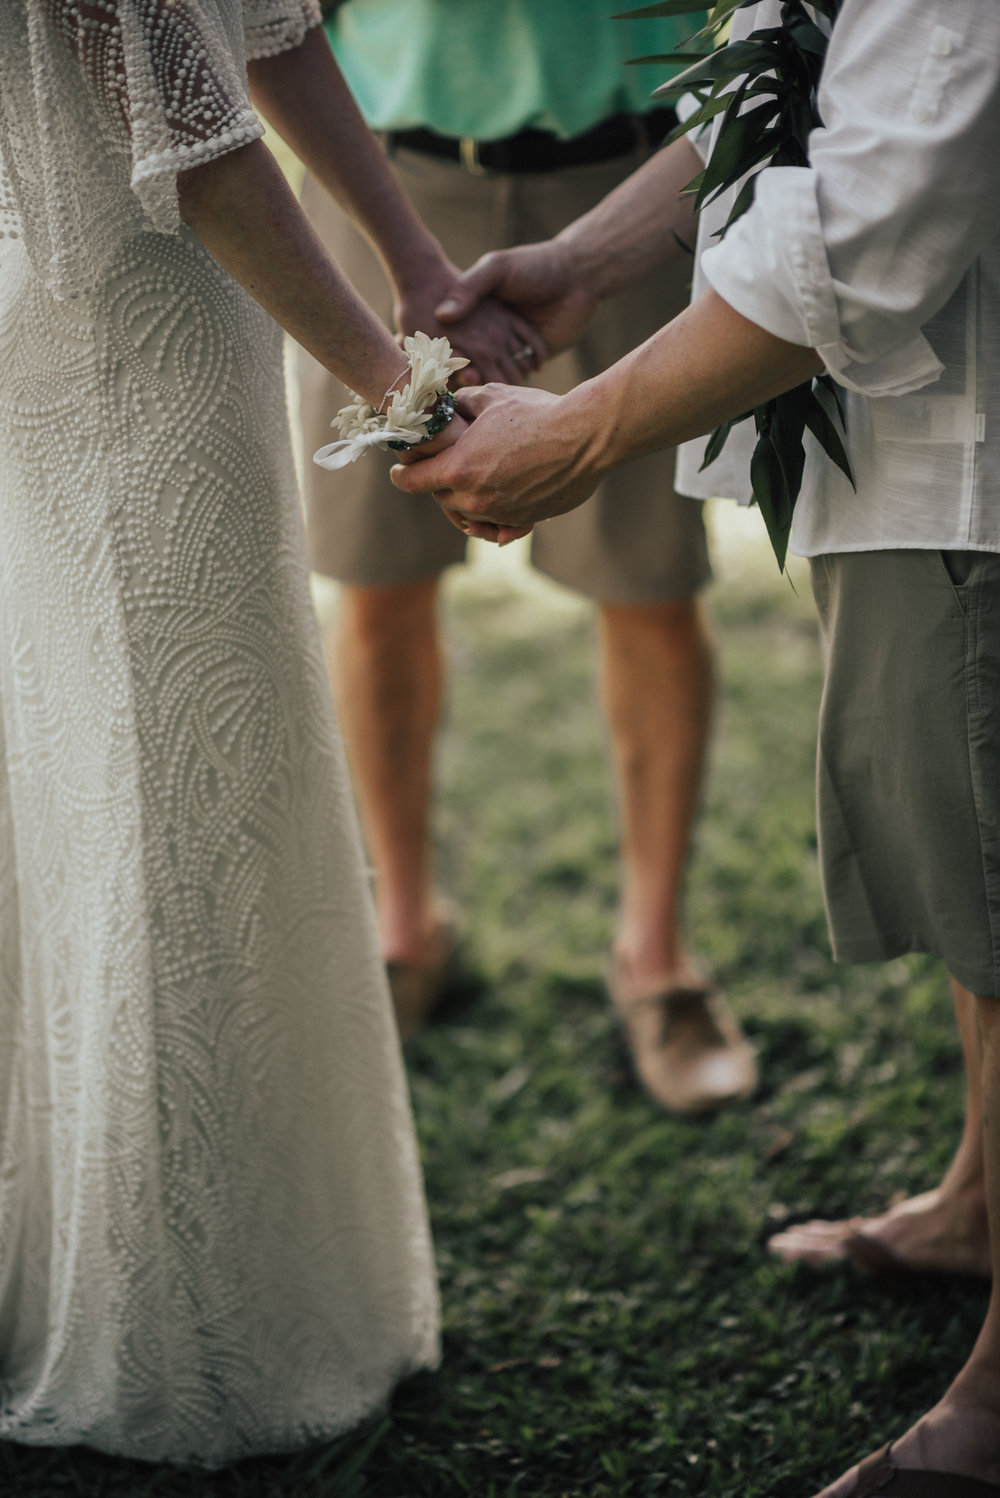 Kauai-elopement-photographer-38.jpg